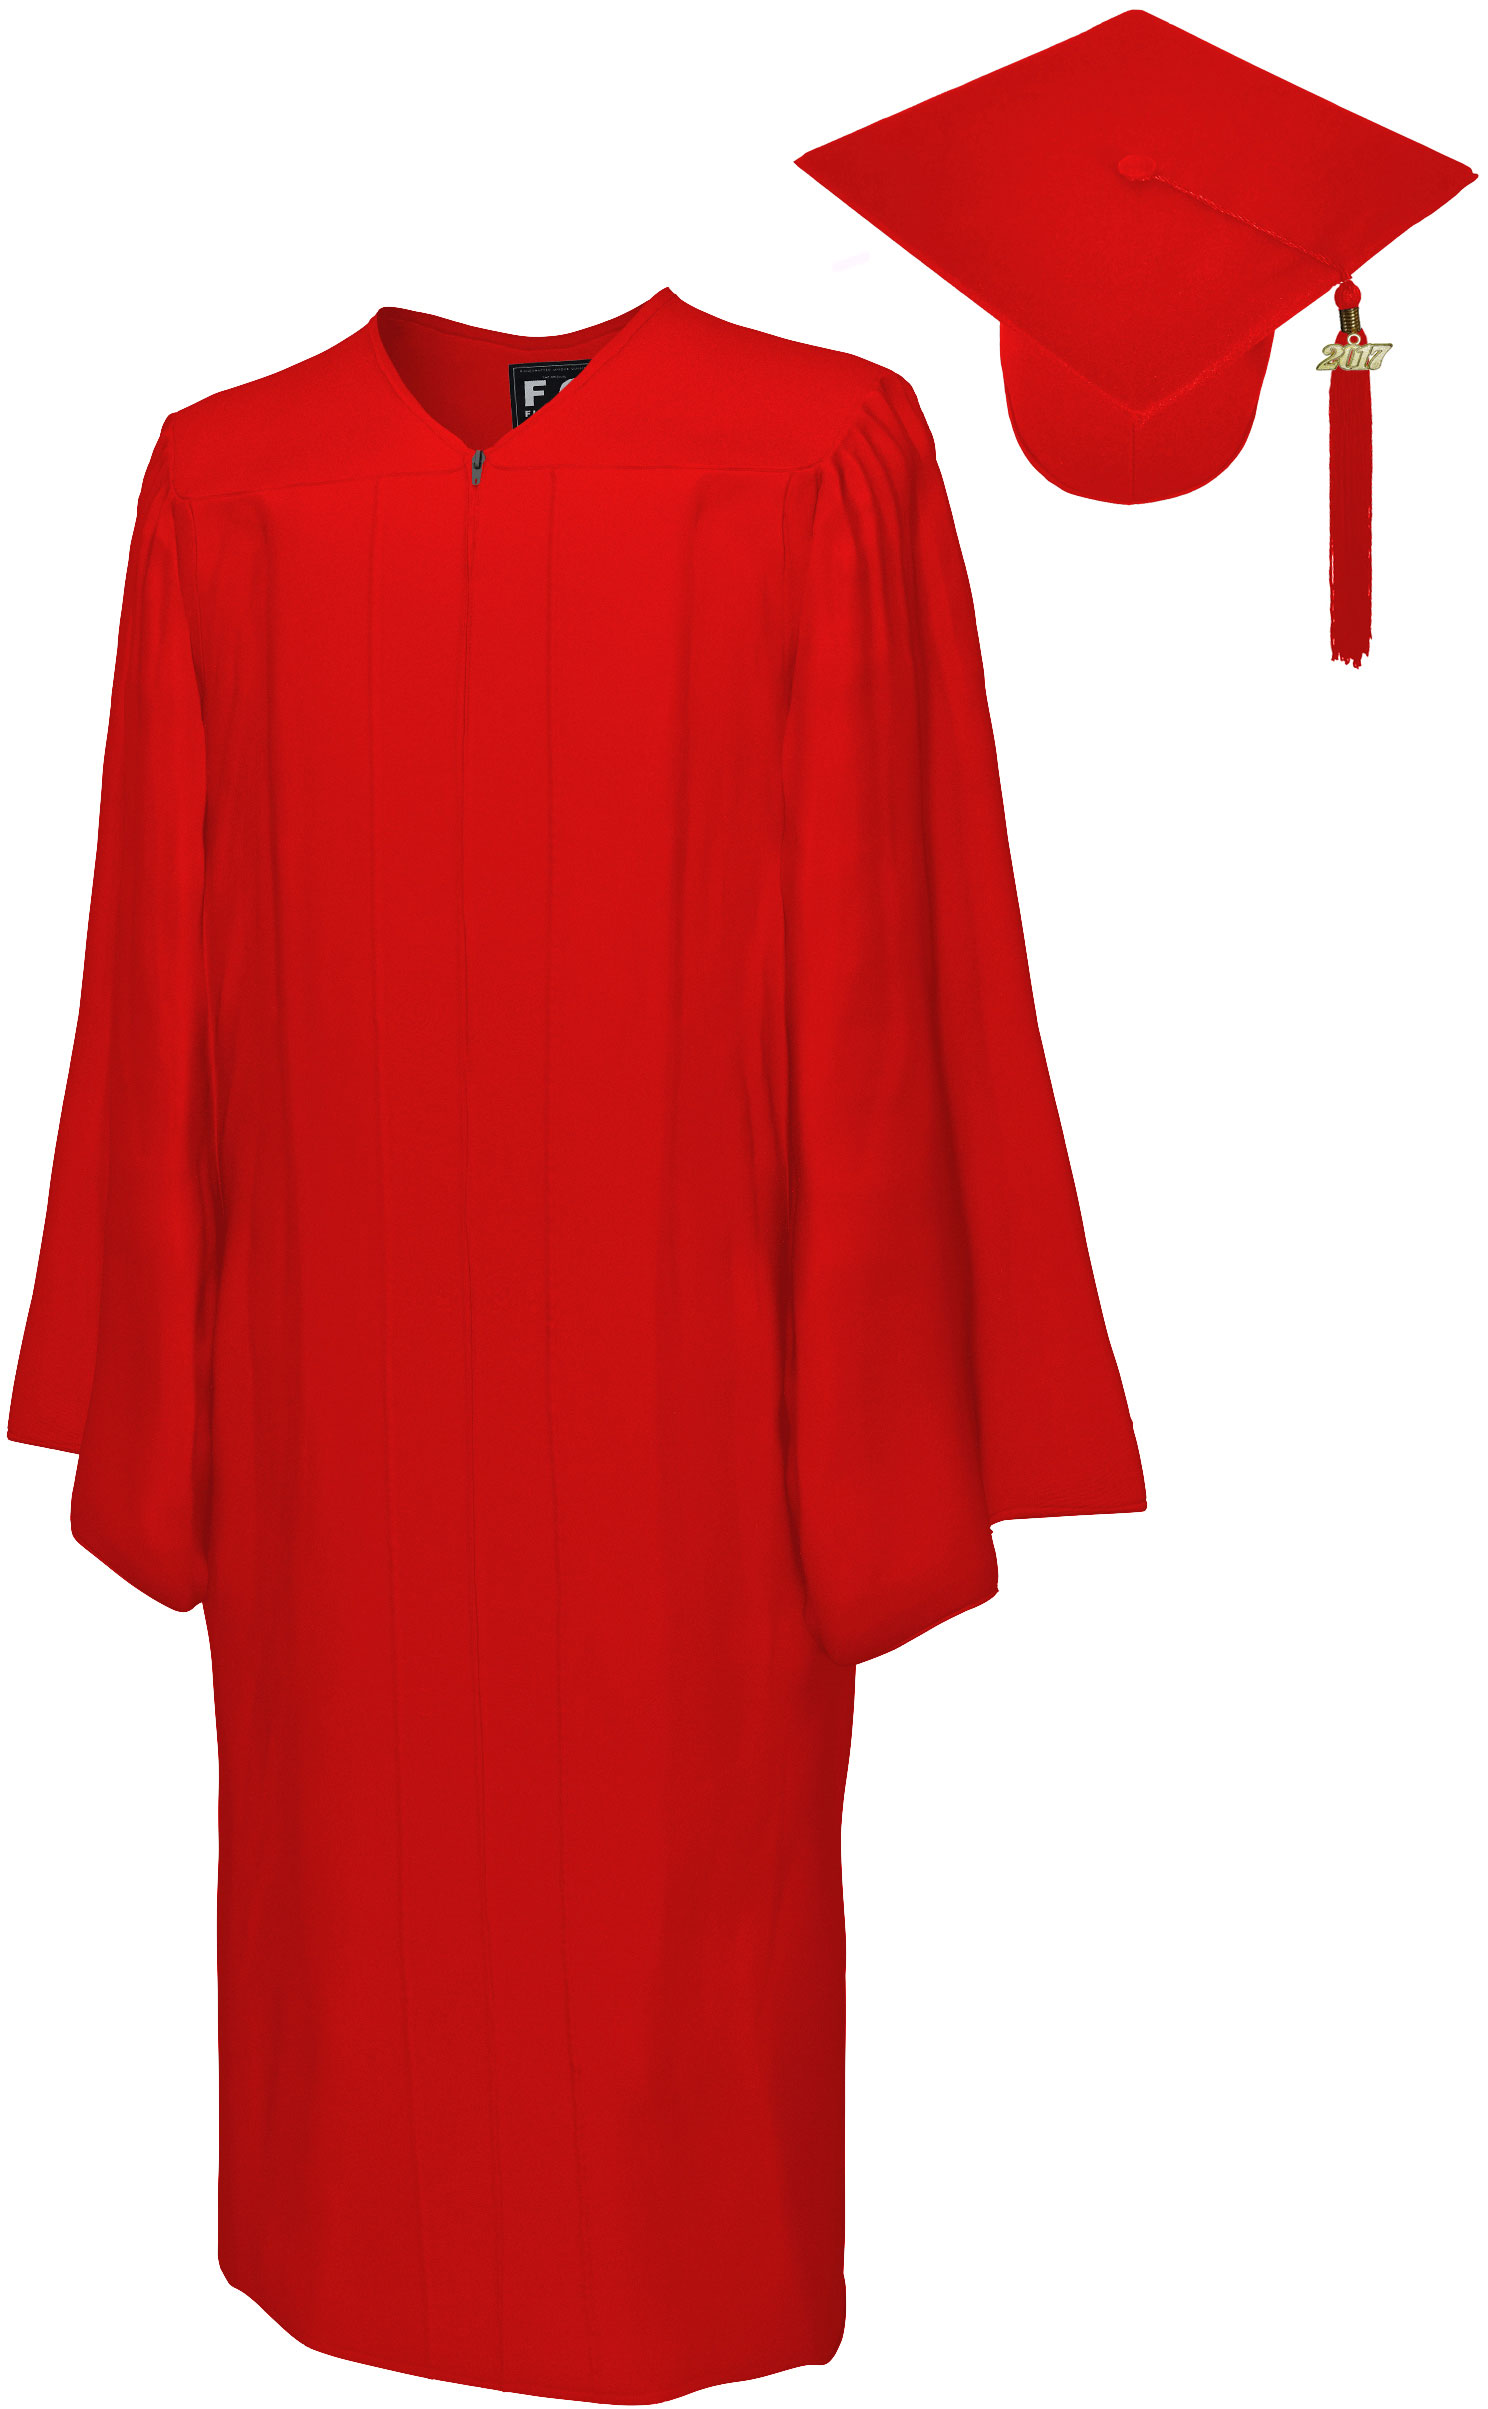 GO GREEN RED CAP, GOWN, GRADUATION BEAR SET-rs4251465614059